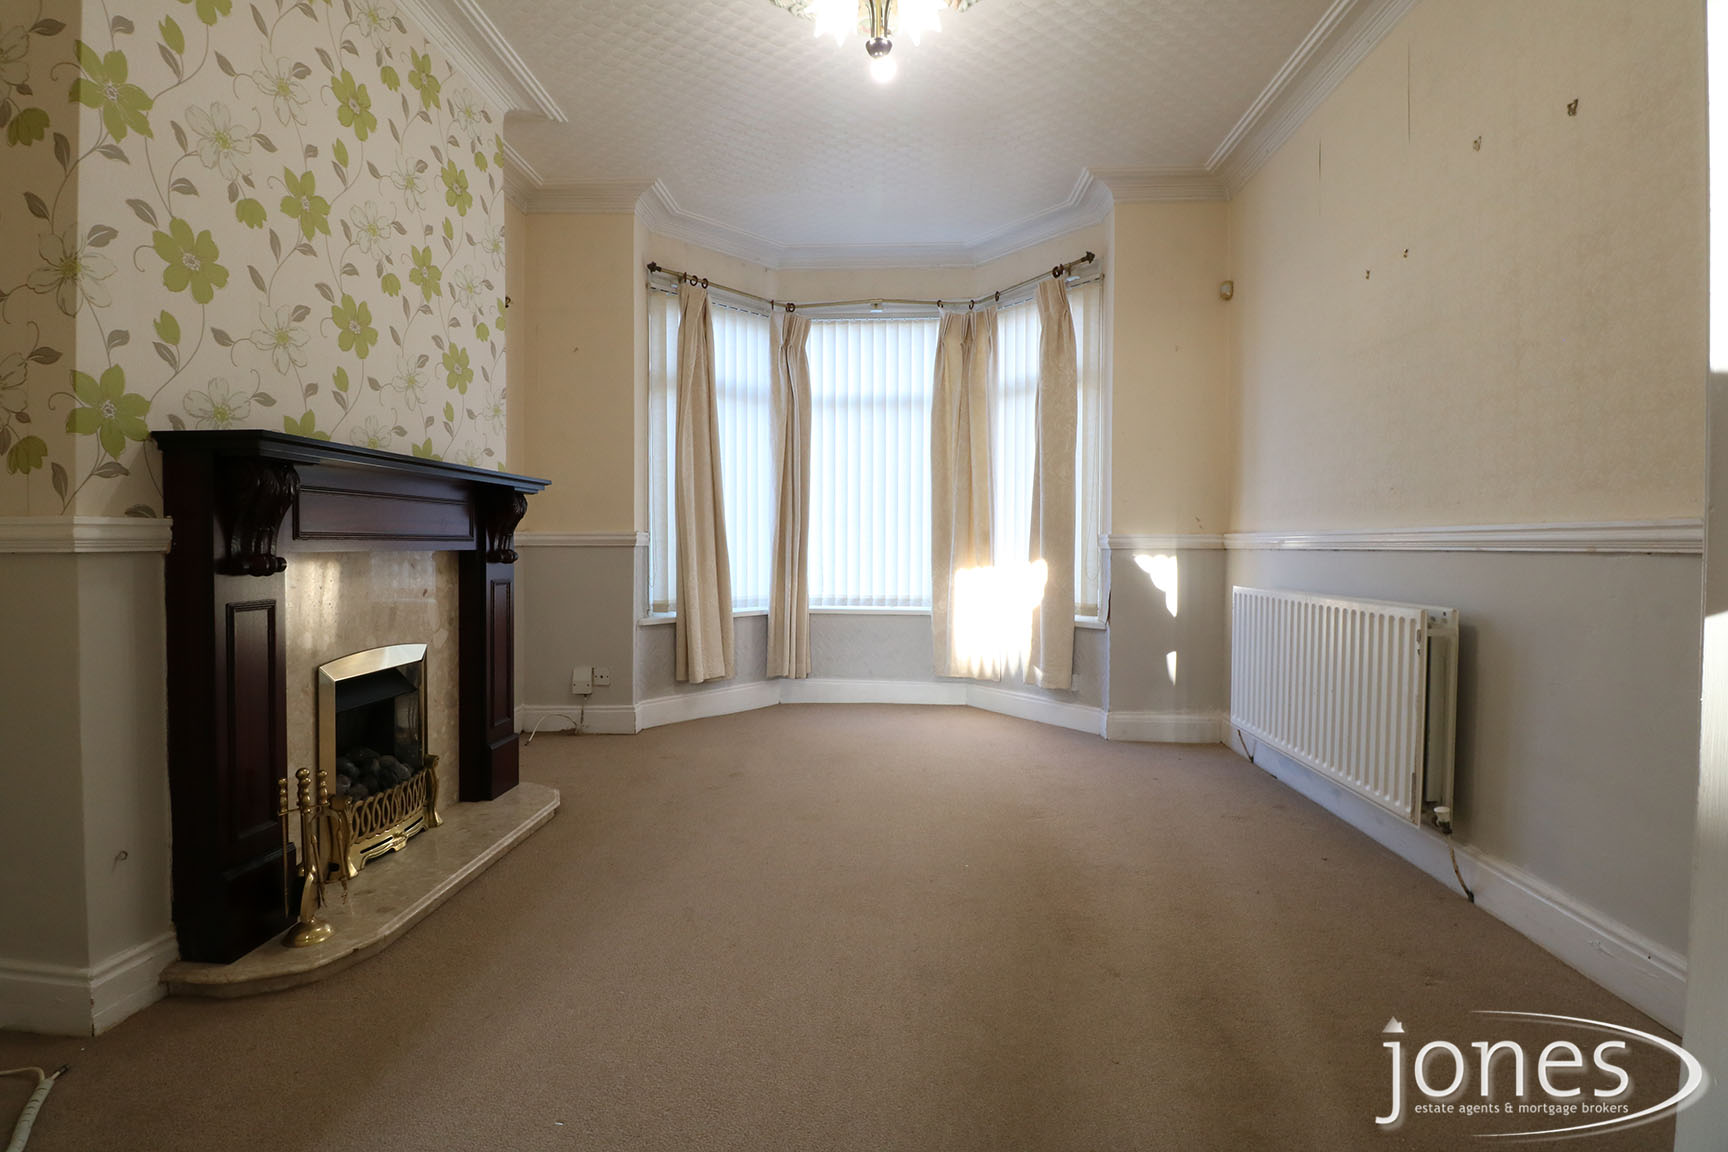 Home for Sale Let - Photo 02 Lambton Road,  Stockton on Tees, TS19 0ER